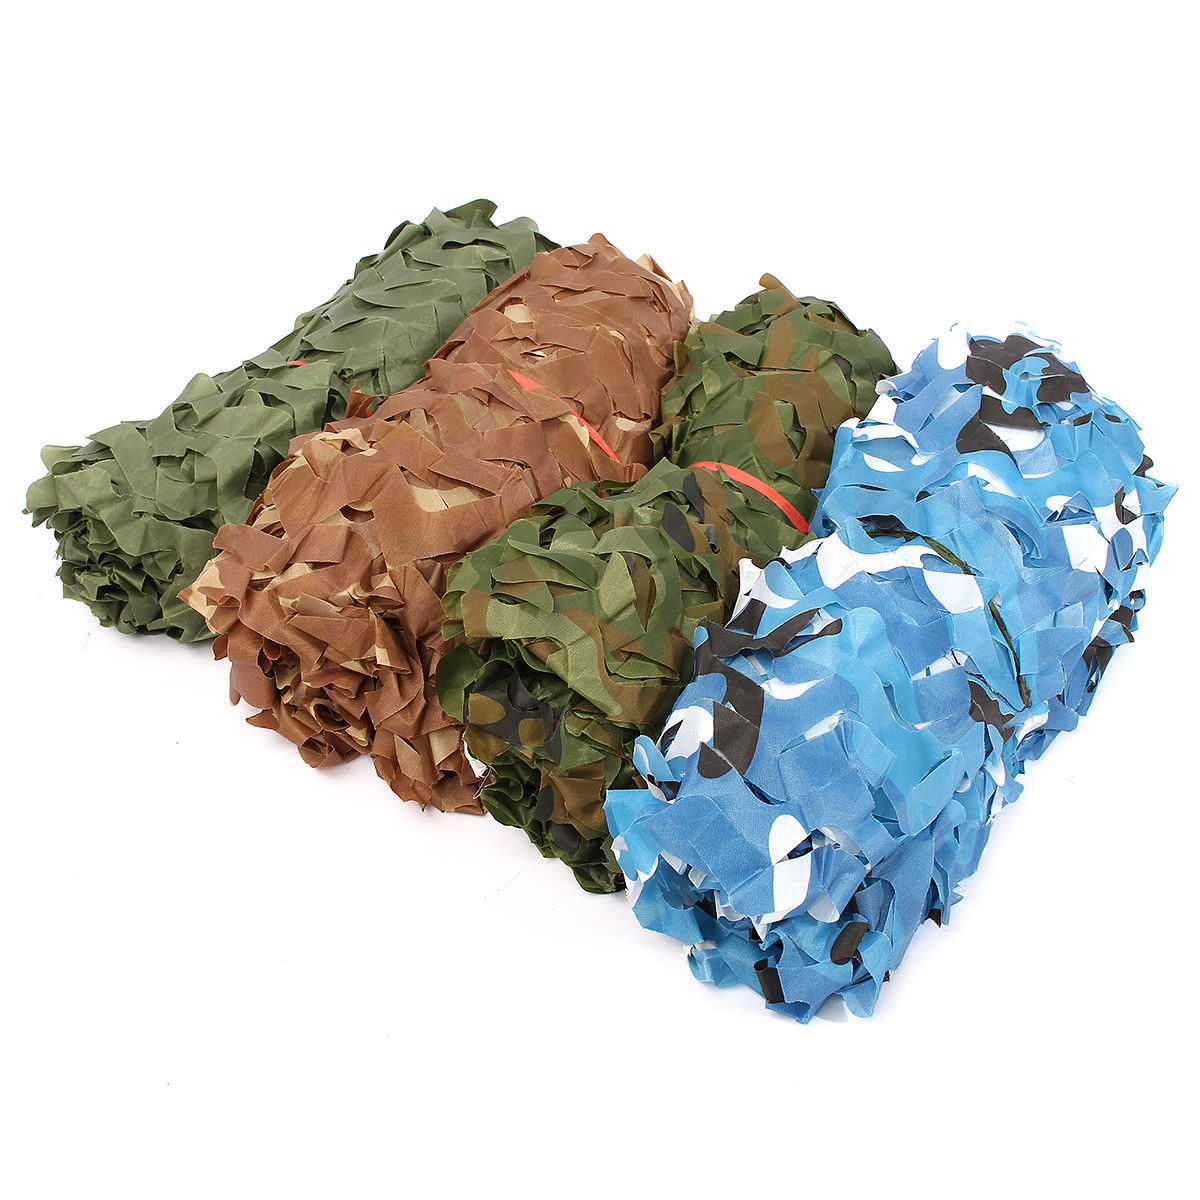 Hunting Military Camouflage Nets Woodland Army Camo netting Camping Sun ShelterTent Shade sun shelter 3*5M 4mx2m 5mx2m hunting military camouflage nets woodland army camo netting camping sun sheltertent shade sun shelter